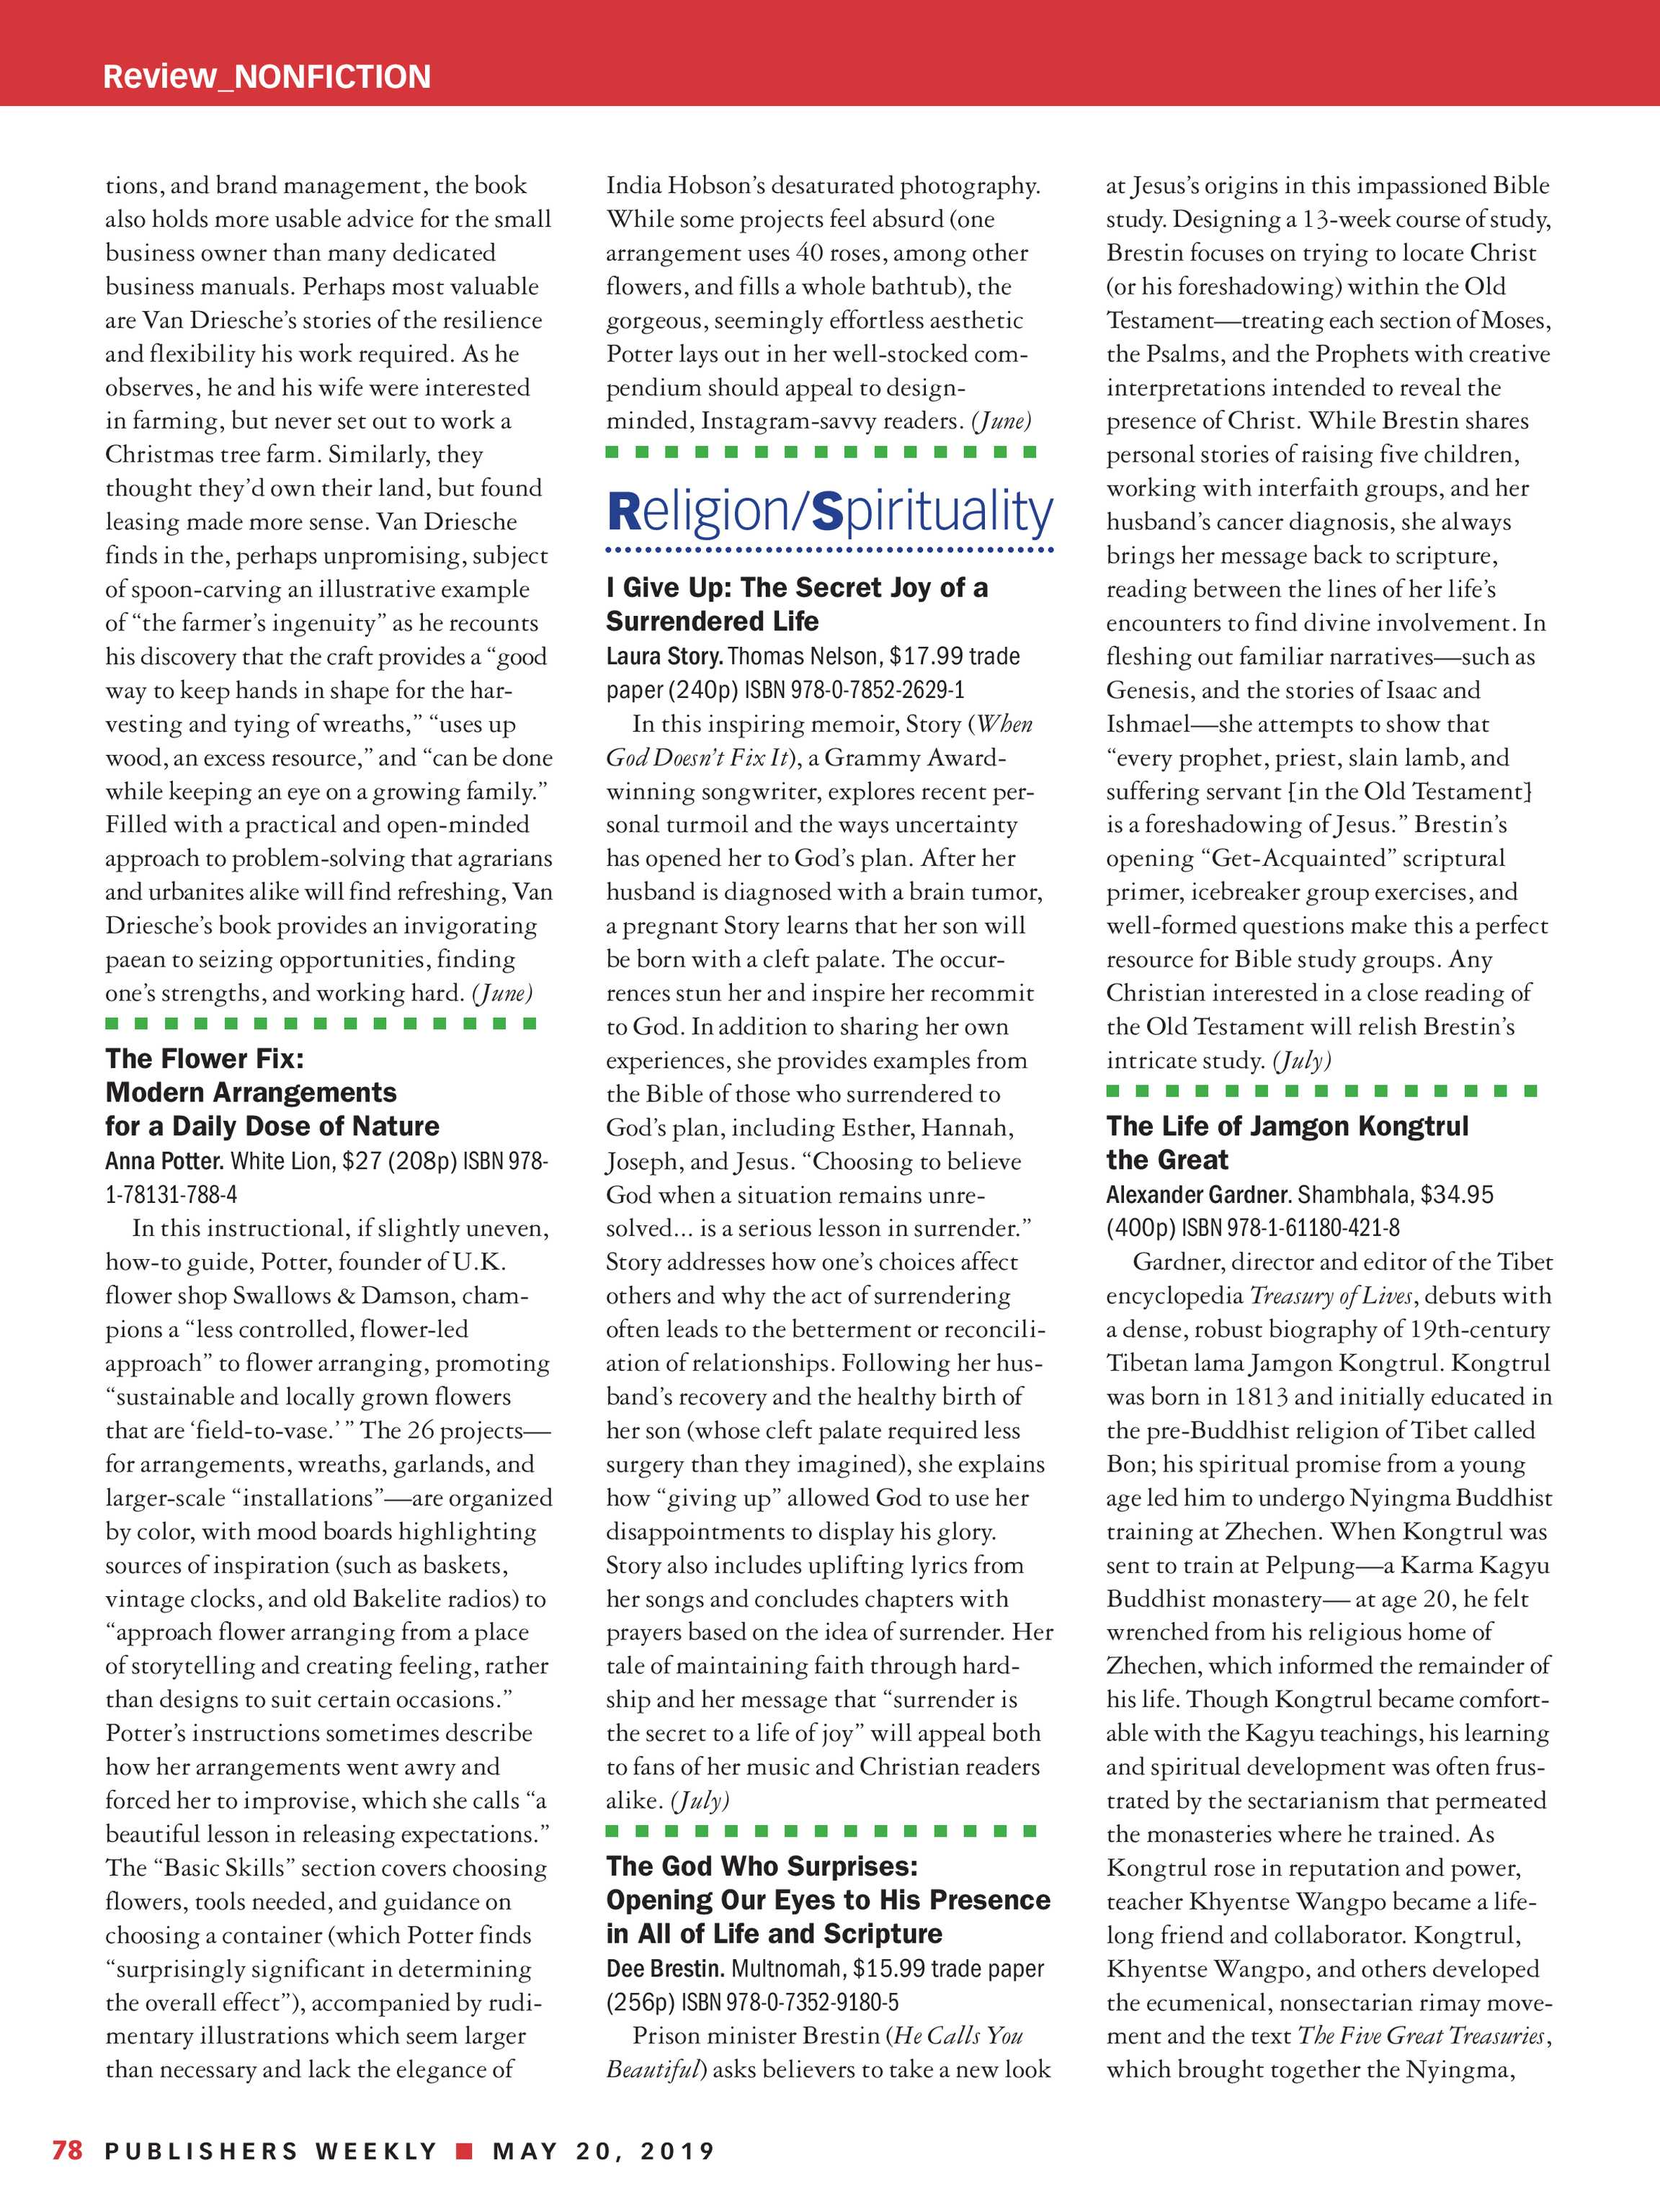 Publishers Weekly - May 20, 2019 - page 78